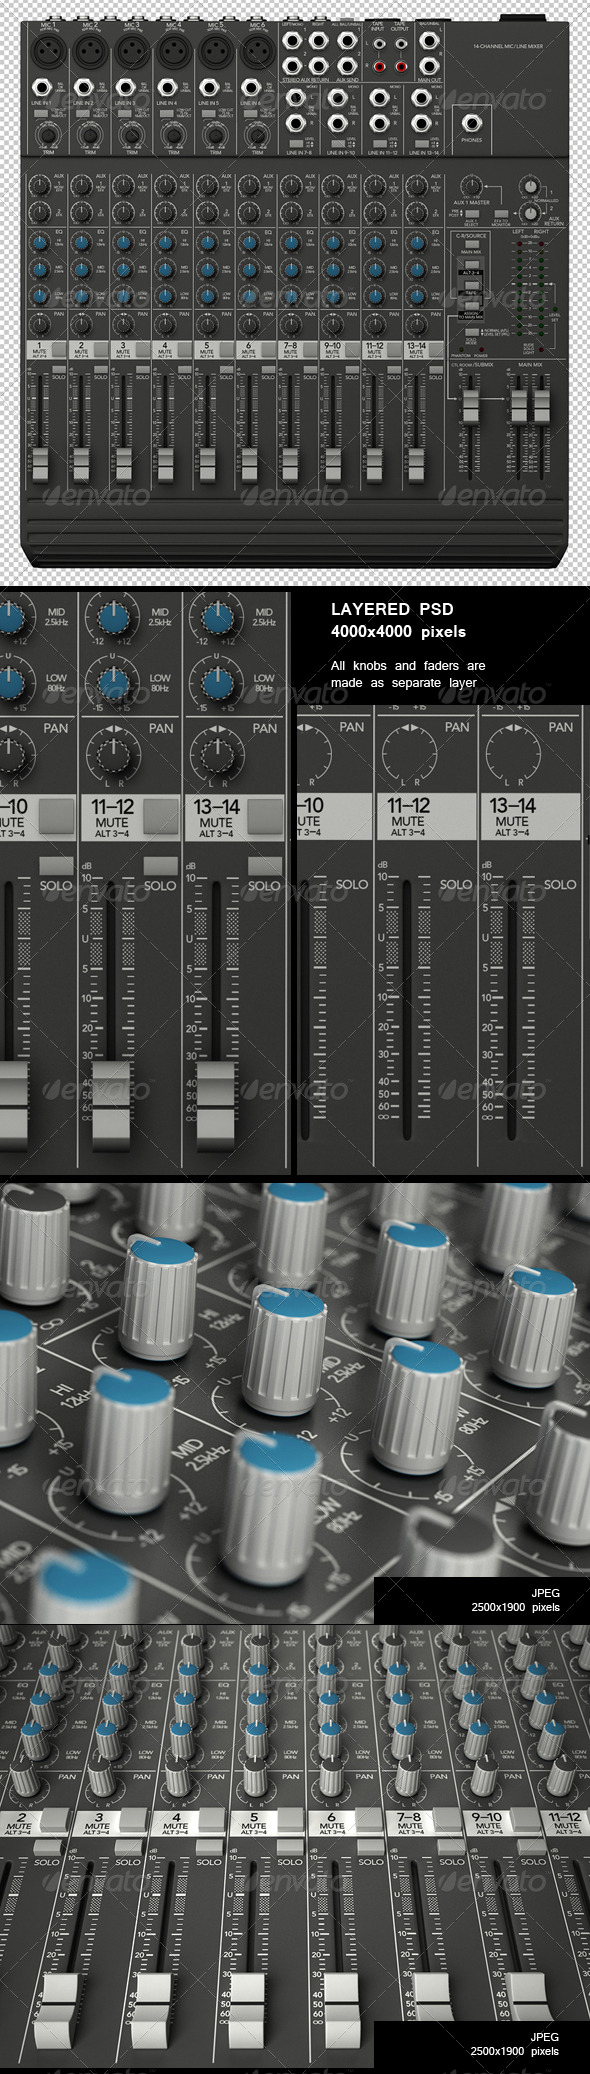 Sound Mixer Renders Set